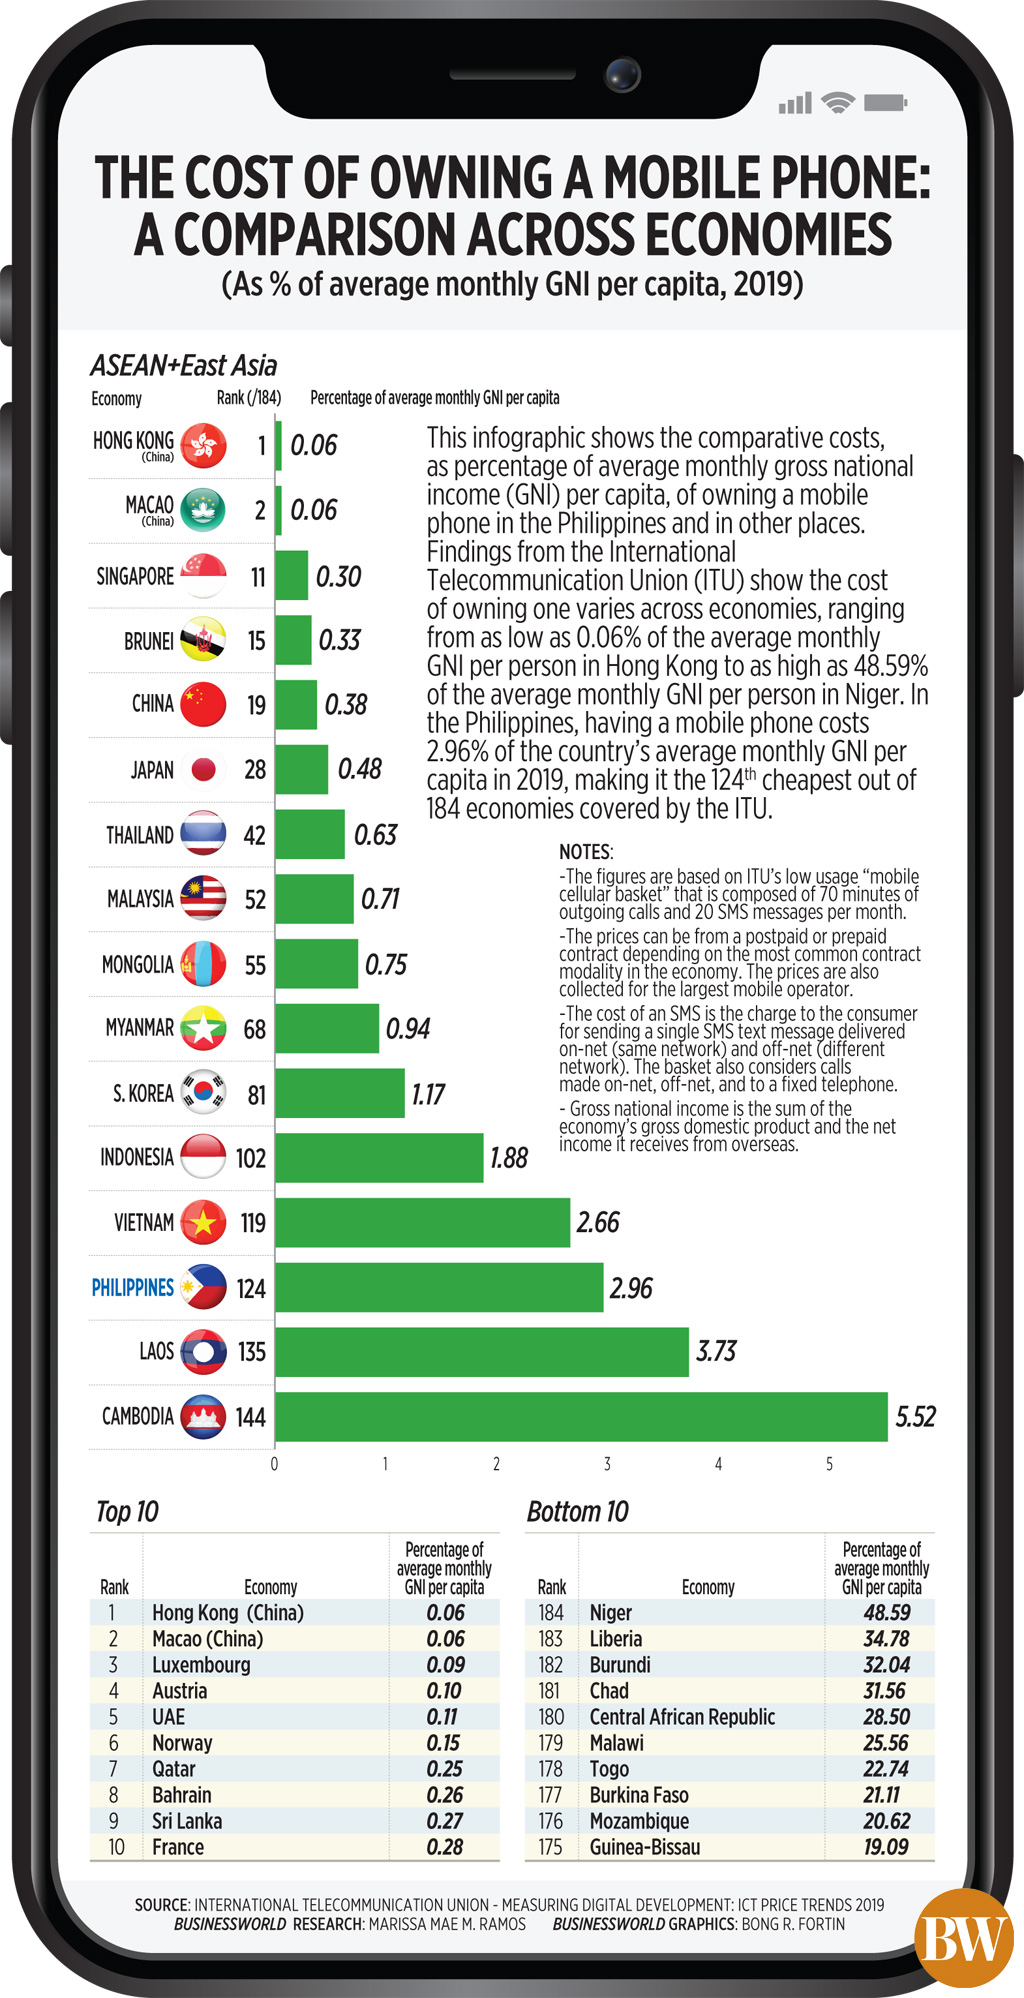 The cost of owning a mobile phone: A comparison across economies